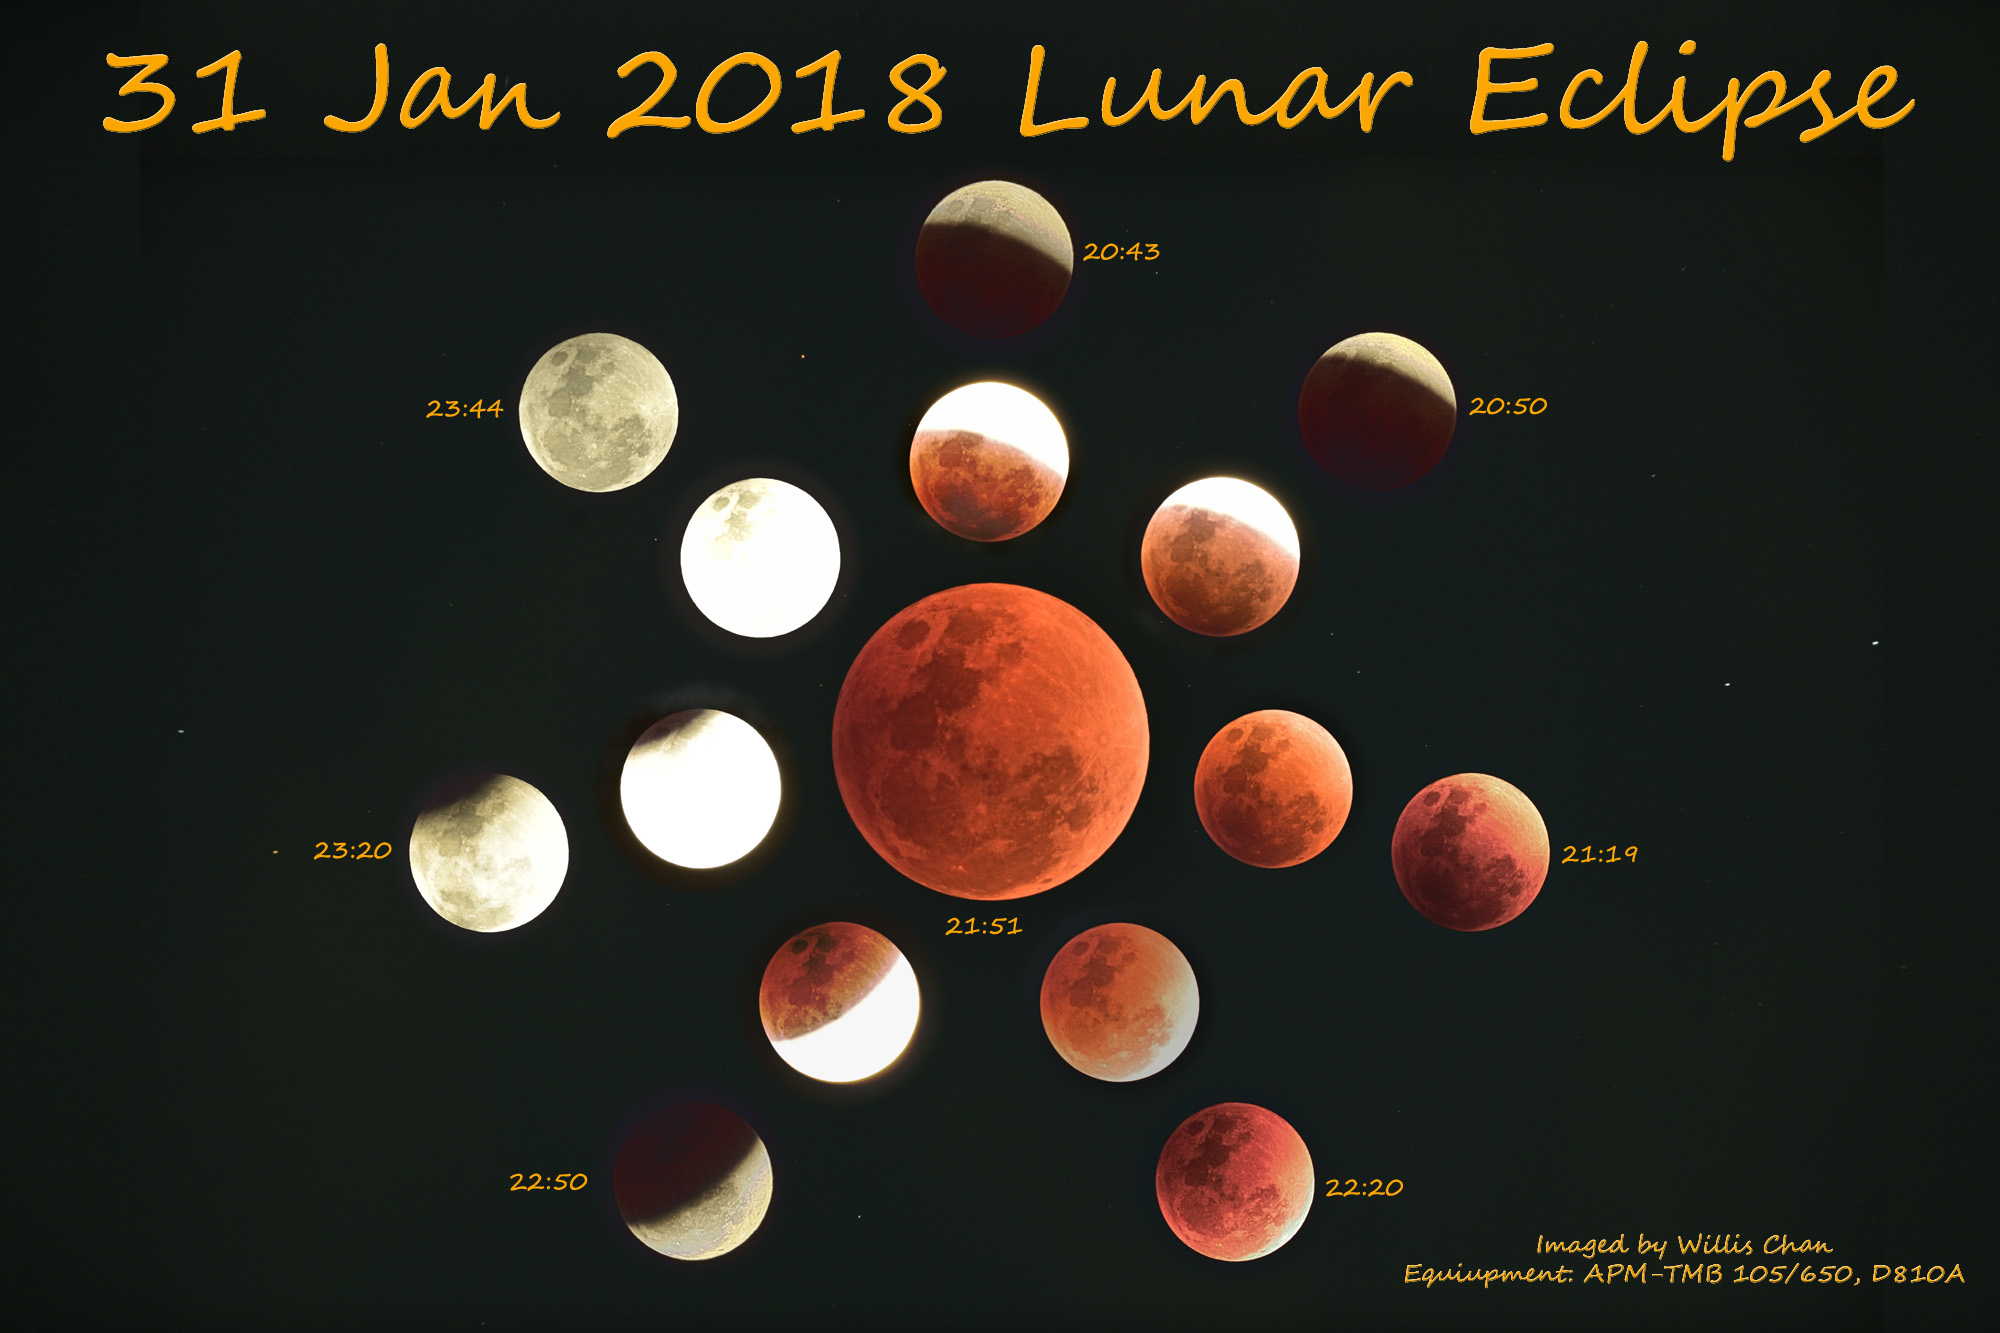 Lunar Eclipse 2018-1-31_with title_2000.jpg